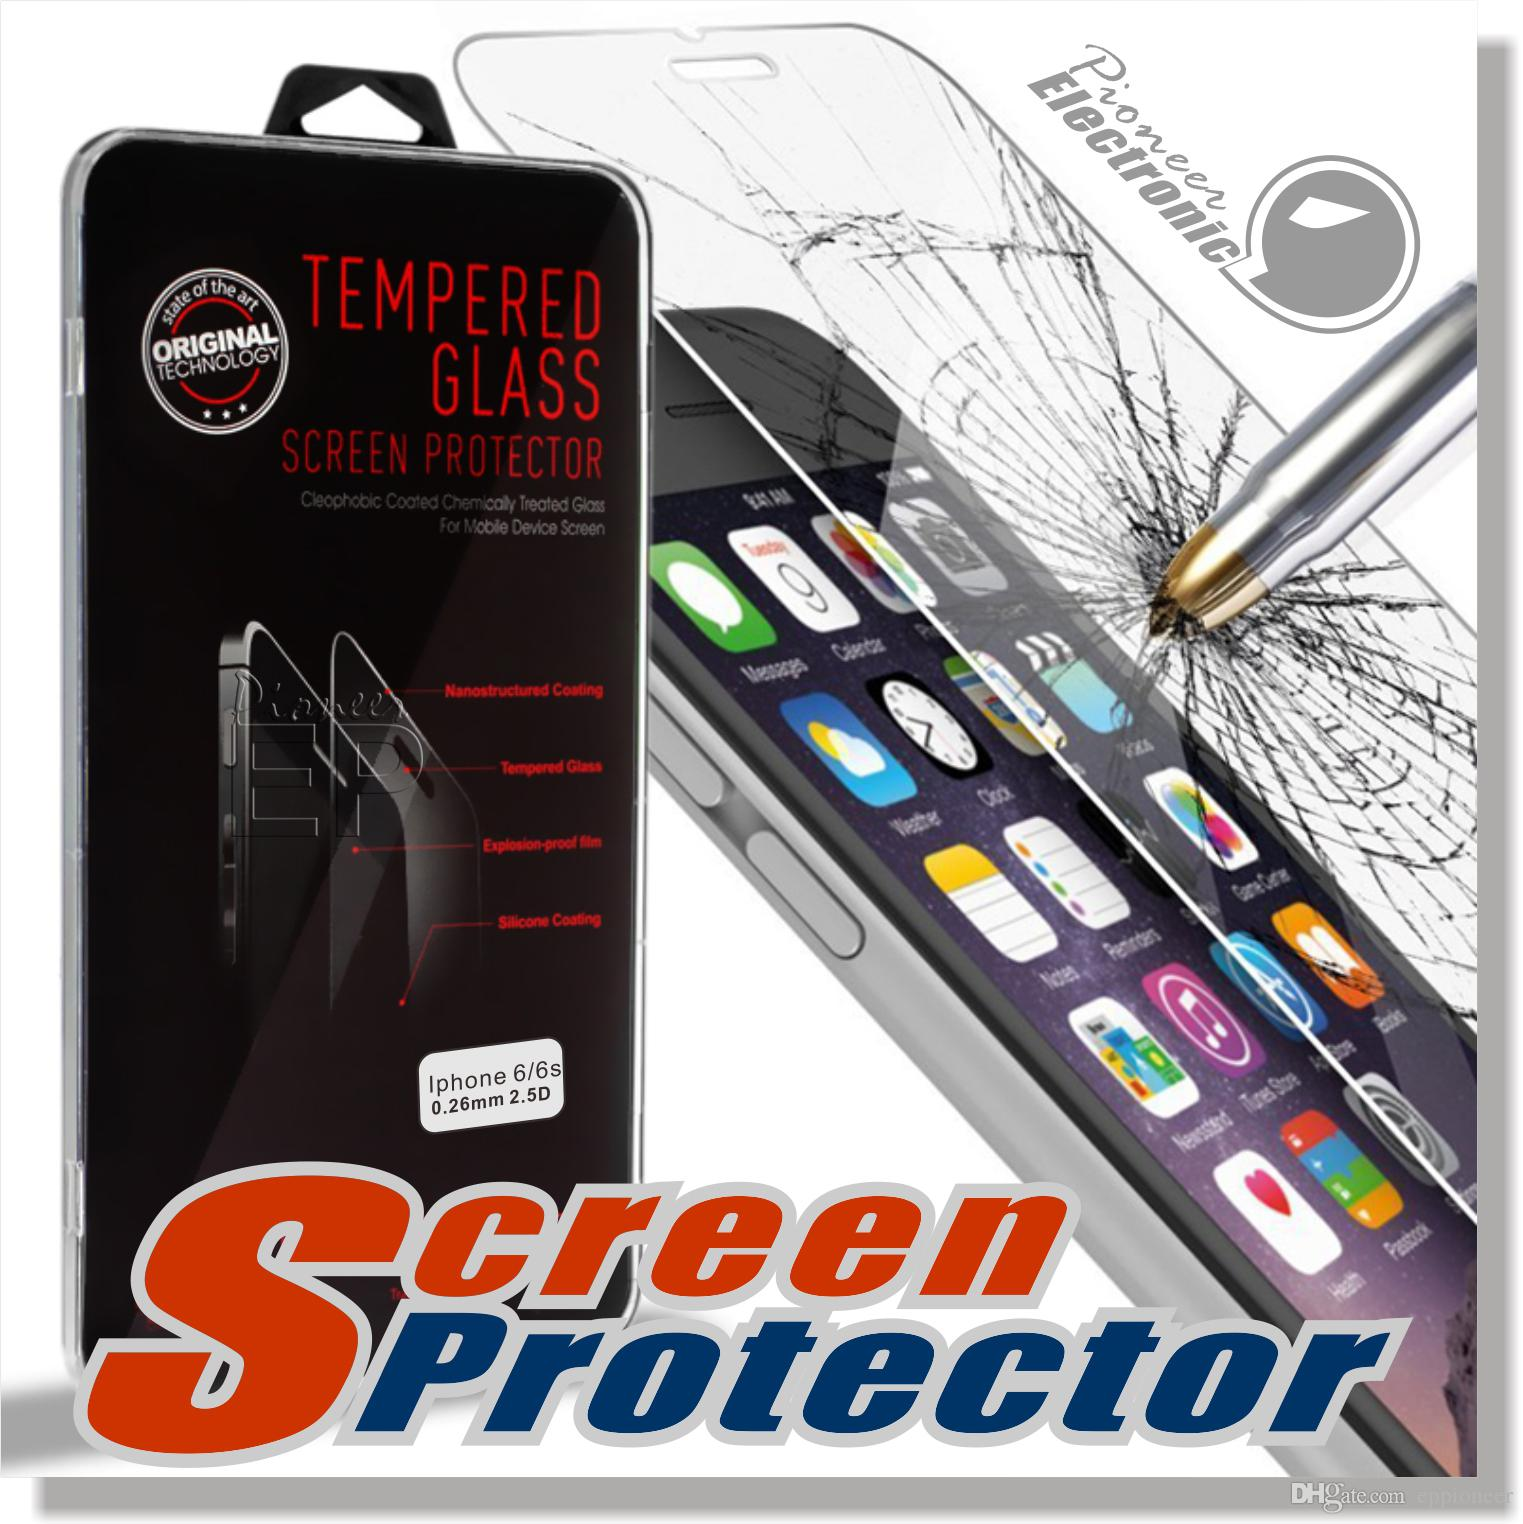 For Iphone 7 7 plus 6s plus LG Aristo V3 Screen Protector Film Tempered Glass For Samsung S5 S6 S7 EP Premium quality retailbox